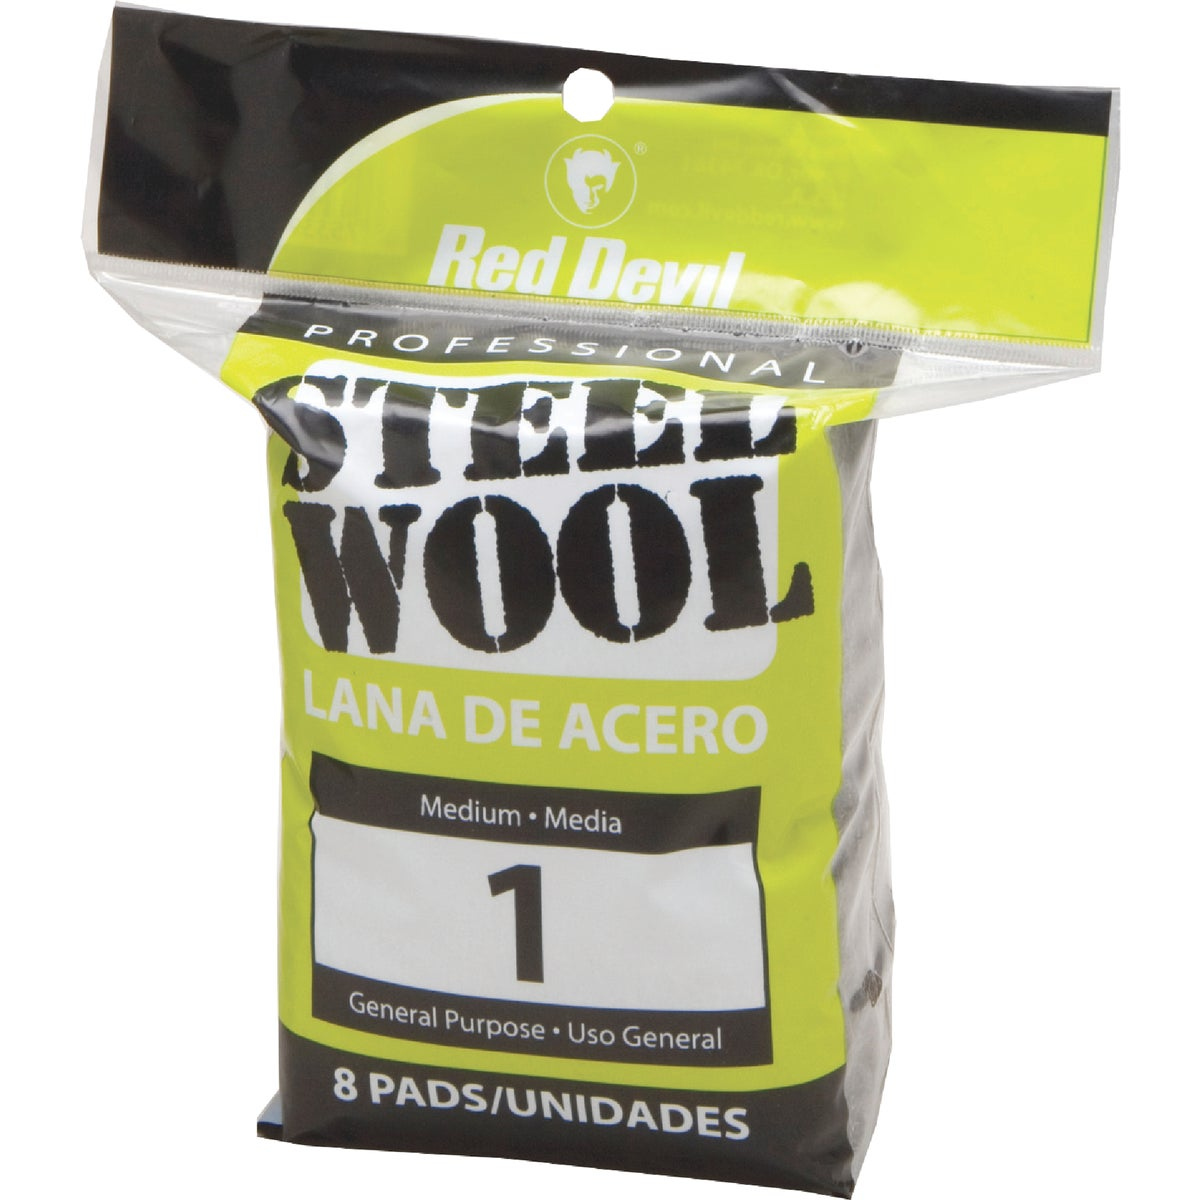 8PK #1 STEEL WOOL - 0324 by Red Devil